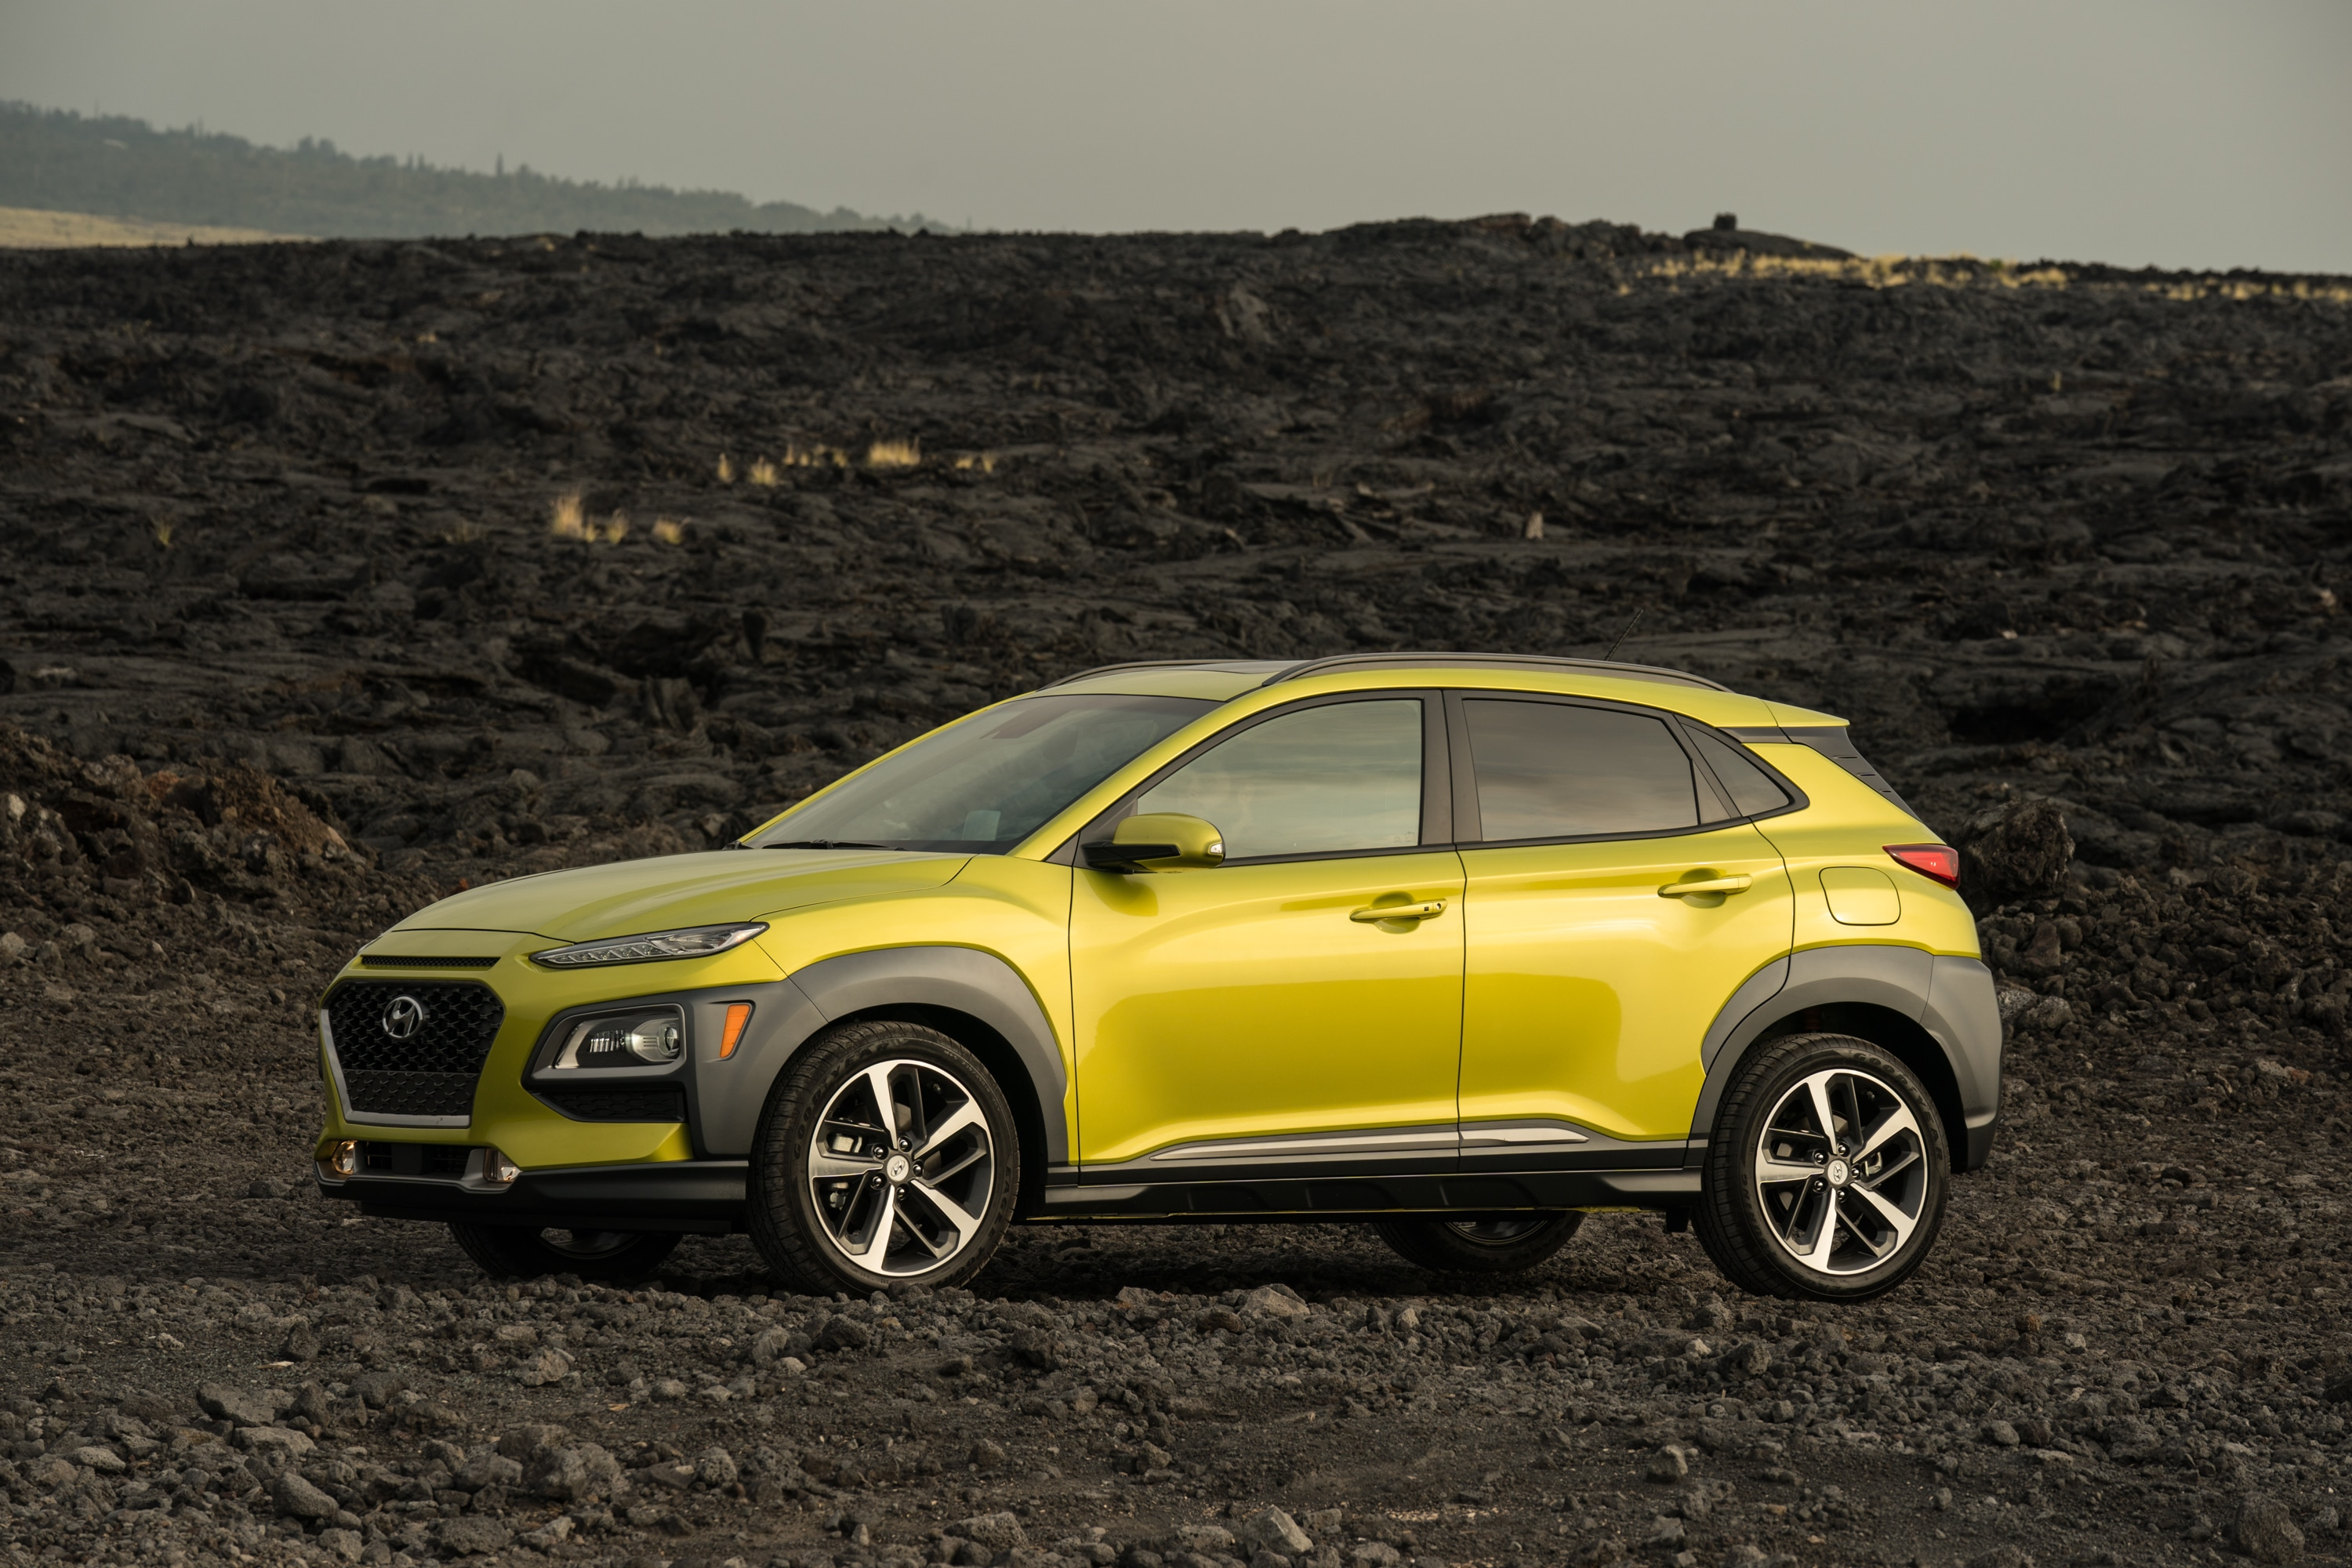 Hyundai Kona Named Crossover of the Year for the Inaugural Texas Motor Press Association Vehicle of the Year Awards